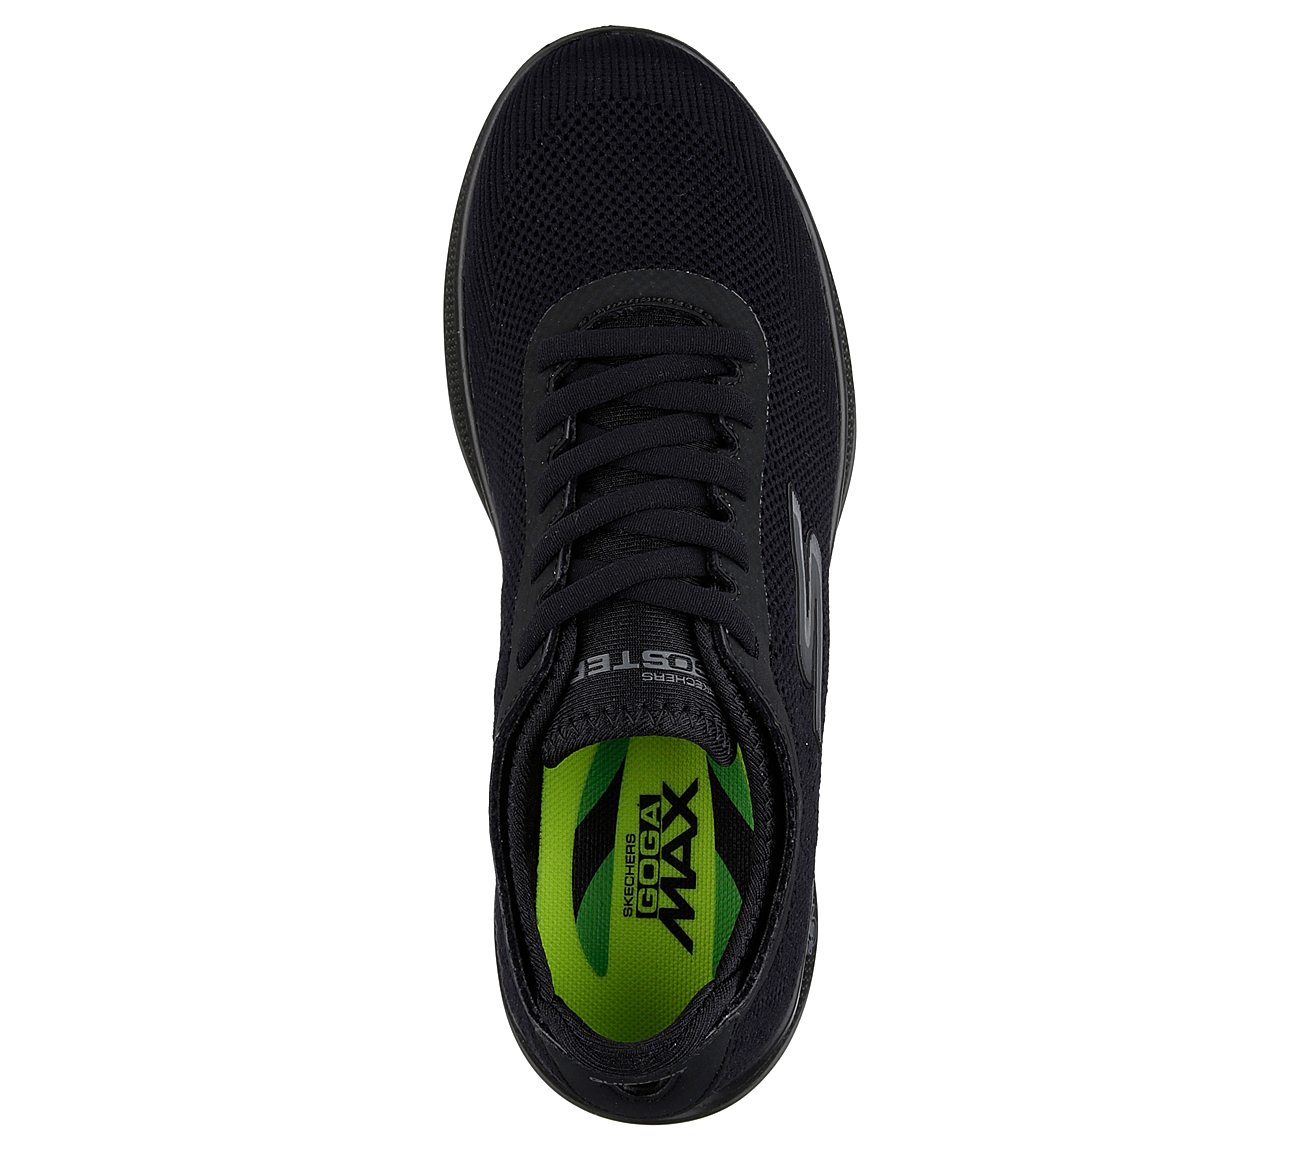 skechers yoga mat shoes. buy skechers skechers go step lite - swerve performance shoes only $60.00 yoga mat